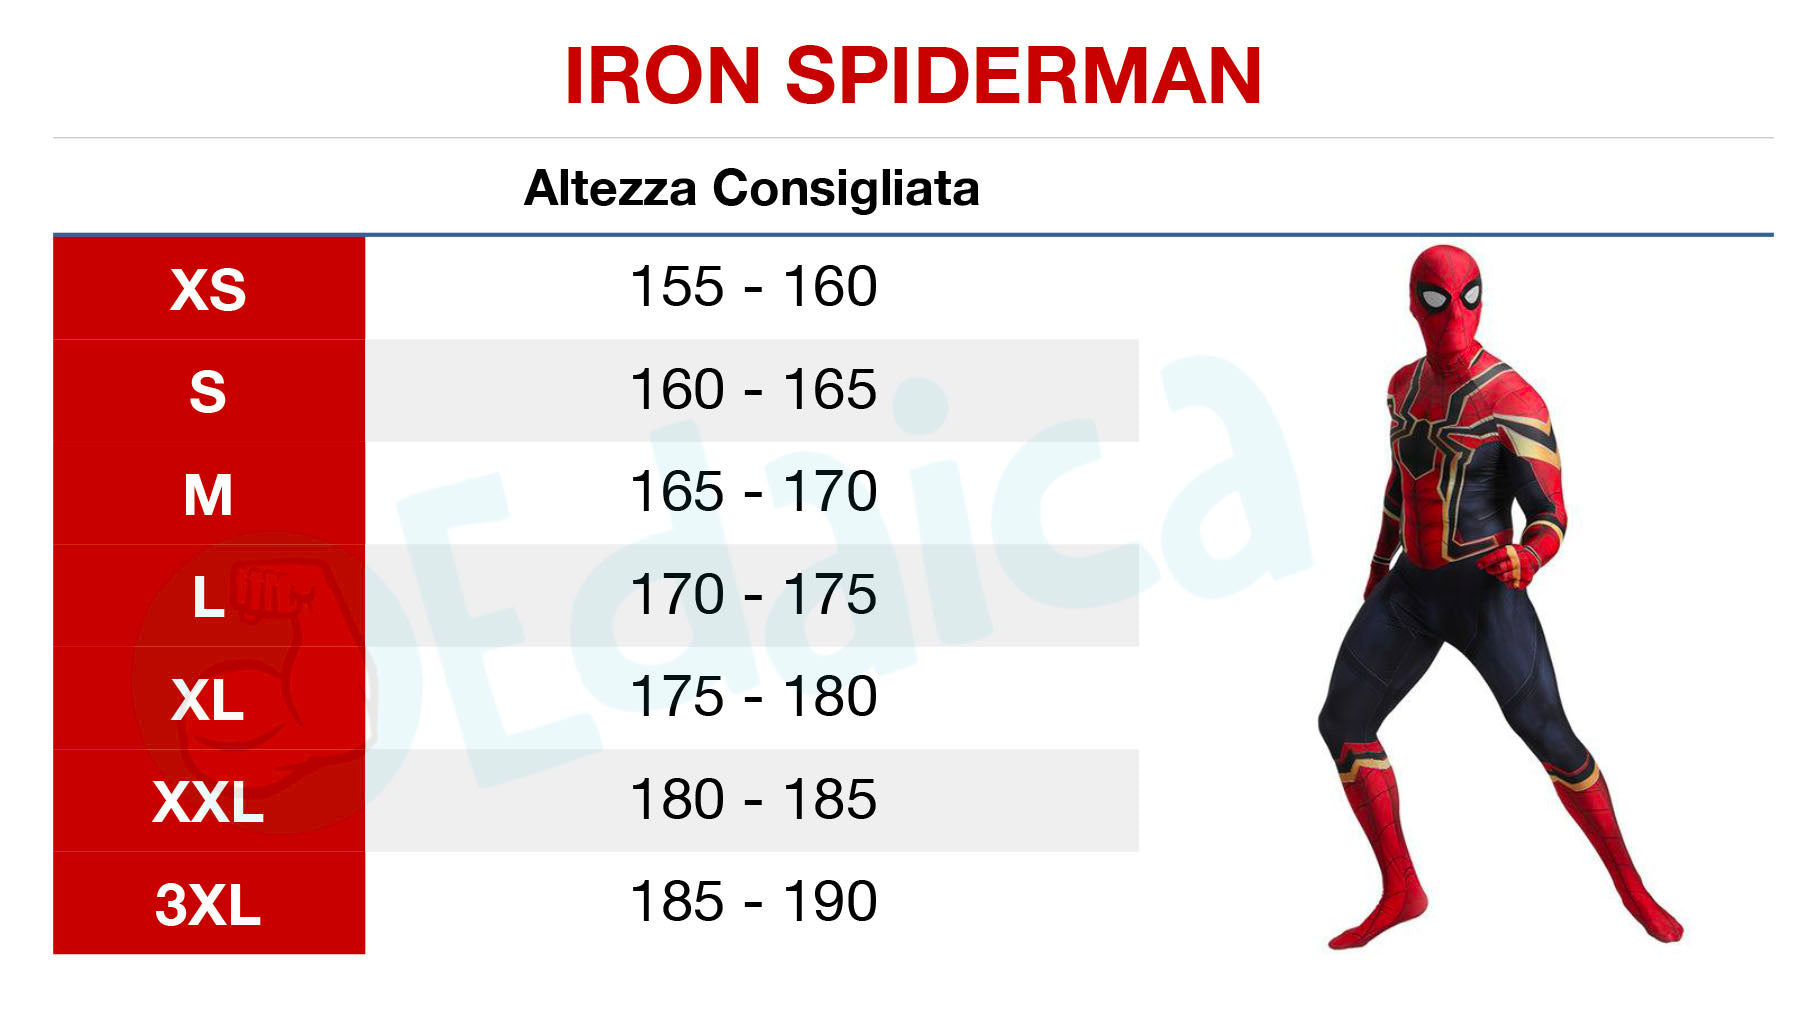 Iron Spiderman